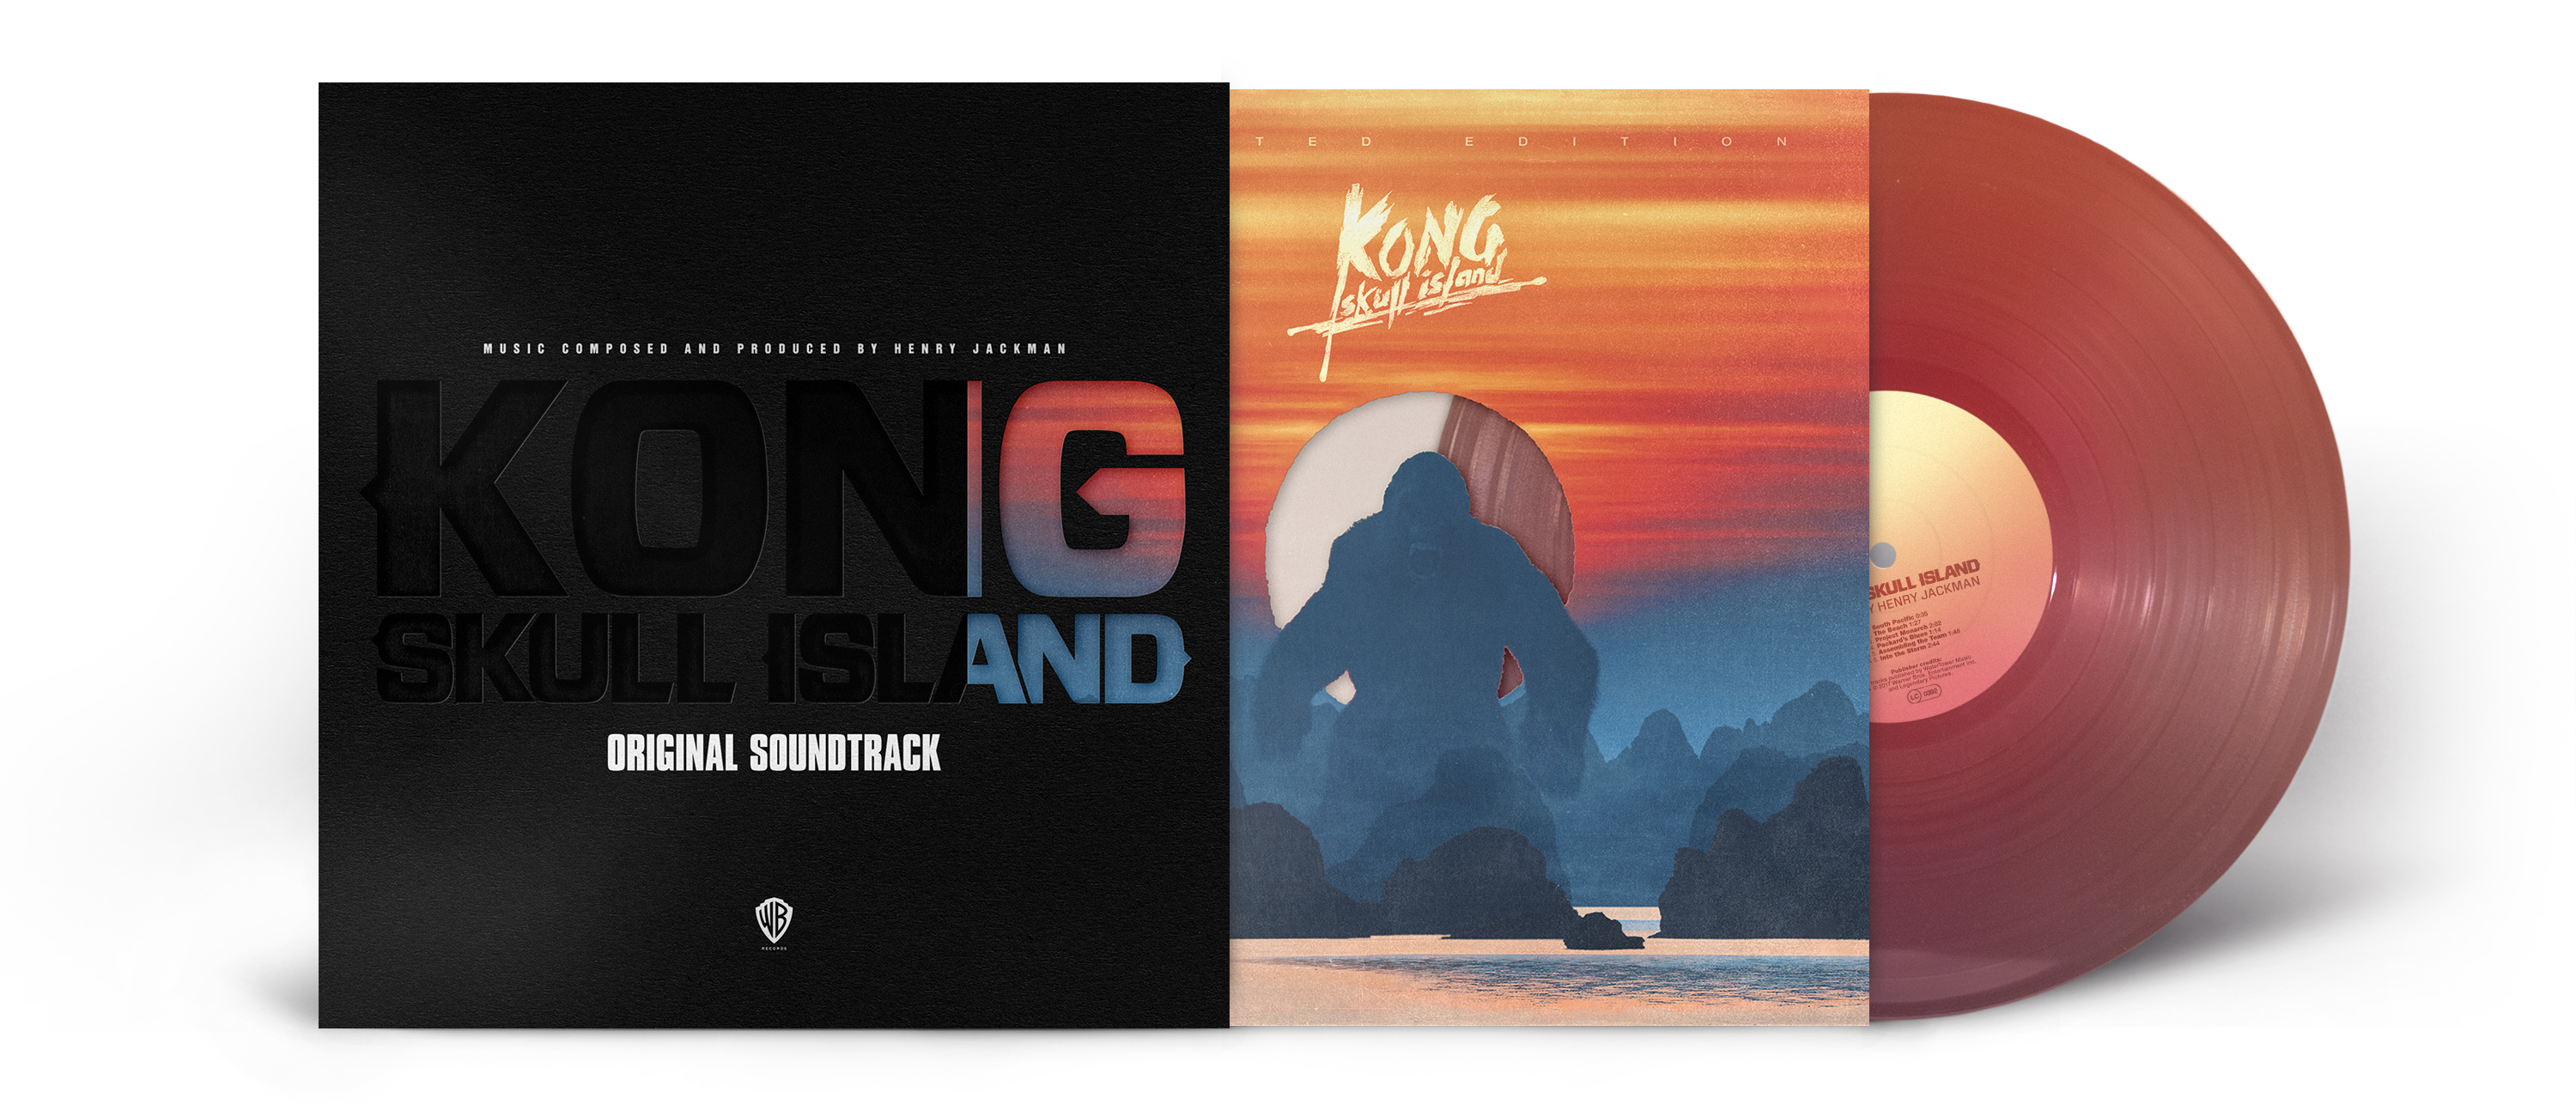 Kong skull island soundtrack on cd - It All Started When I Came Across A Viral Website Named Discover Skull Island